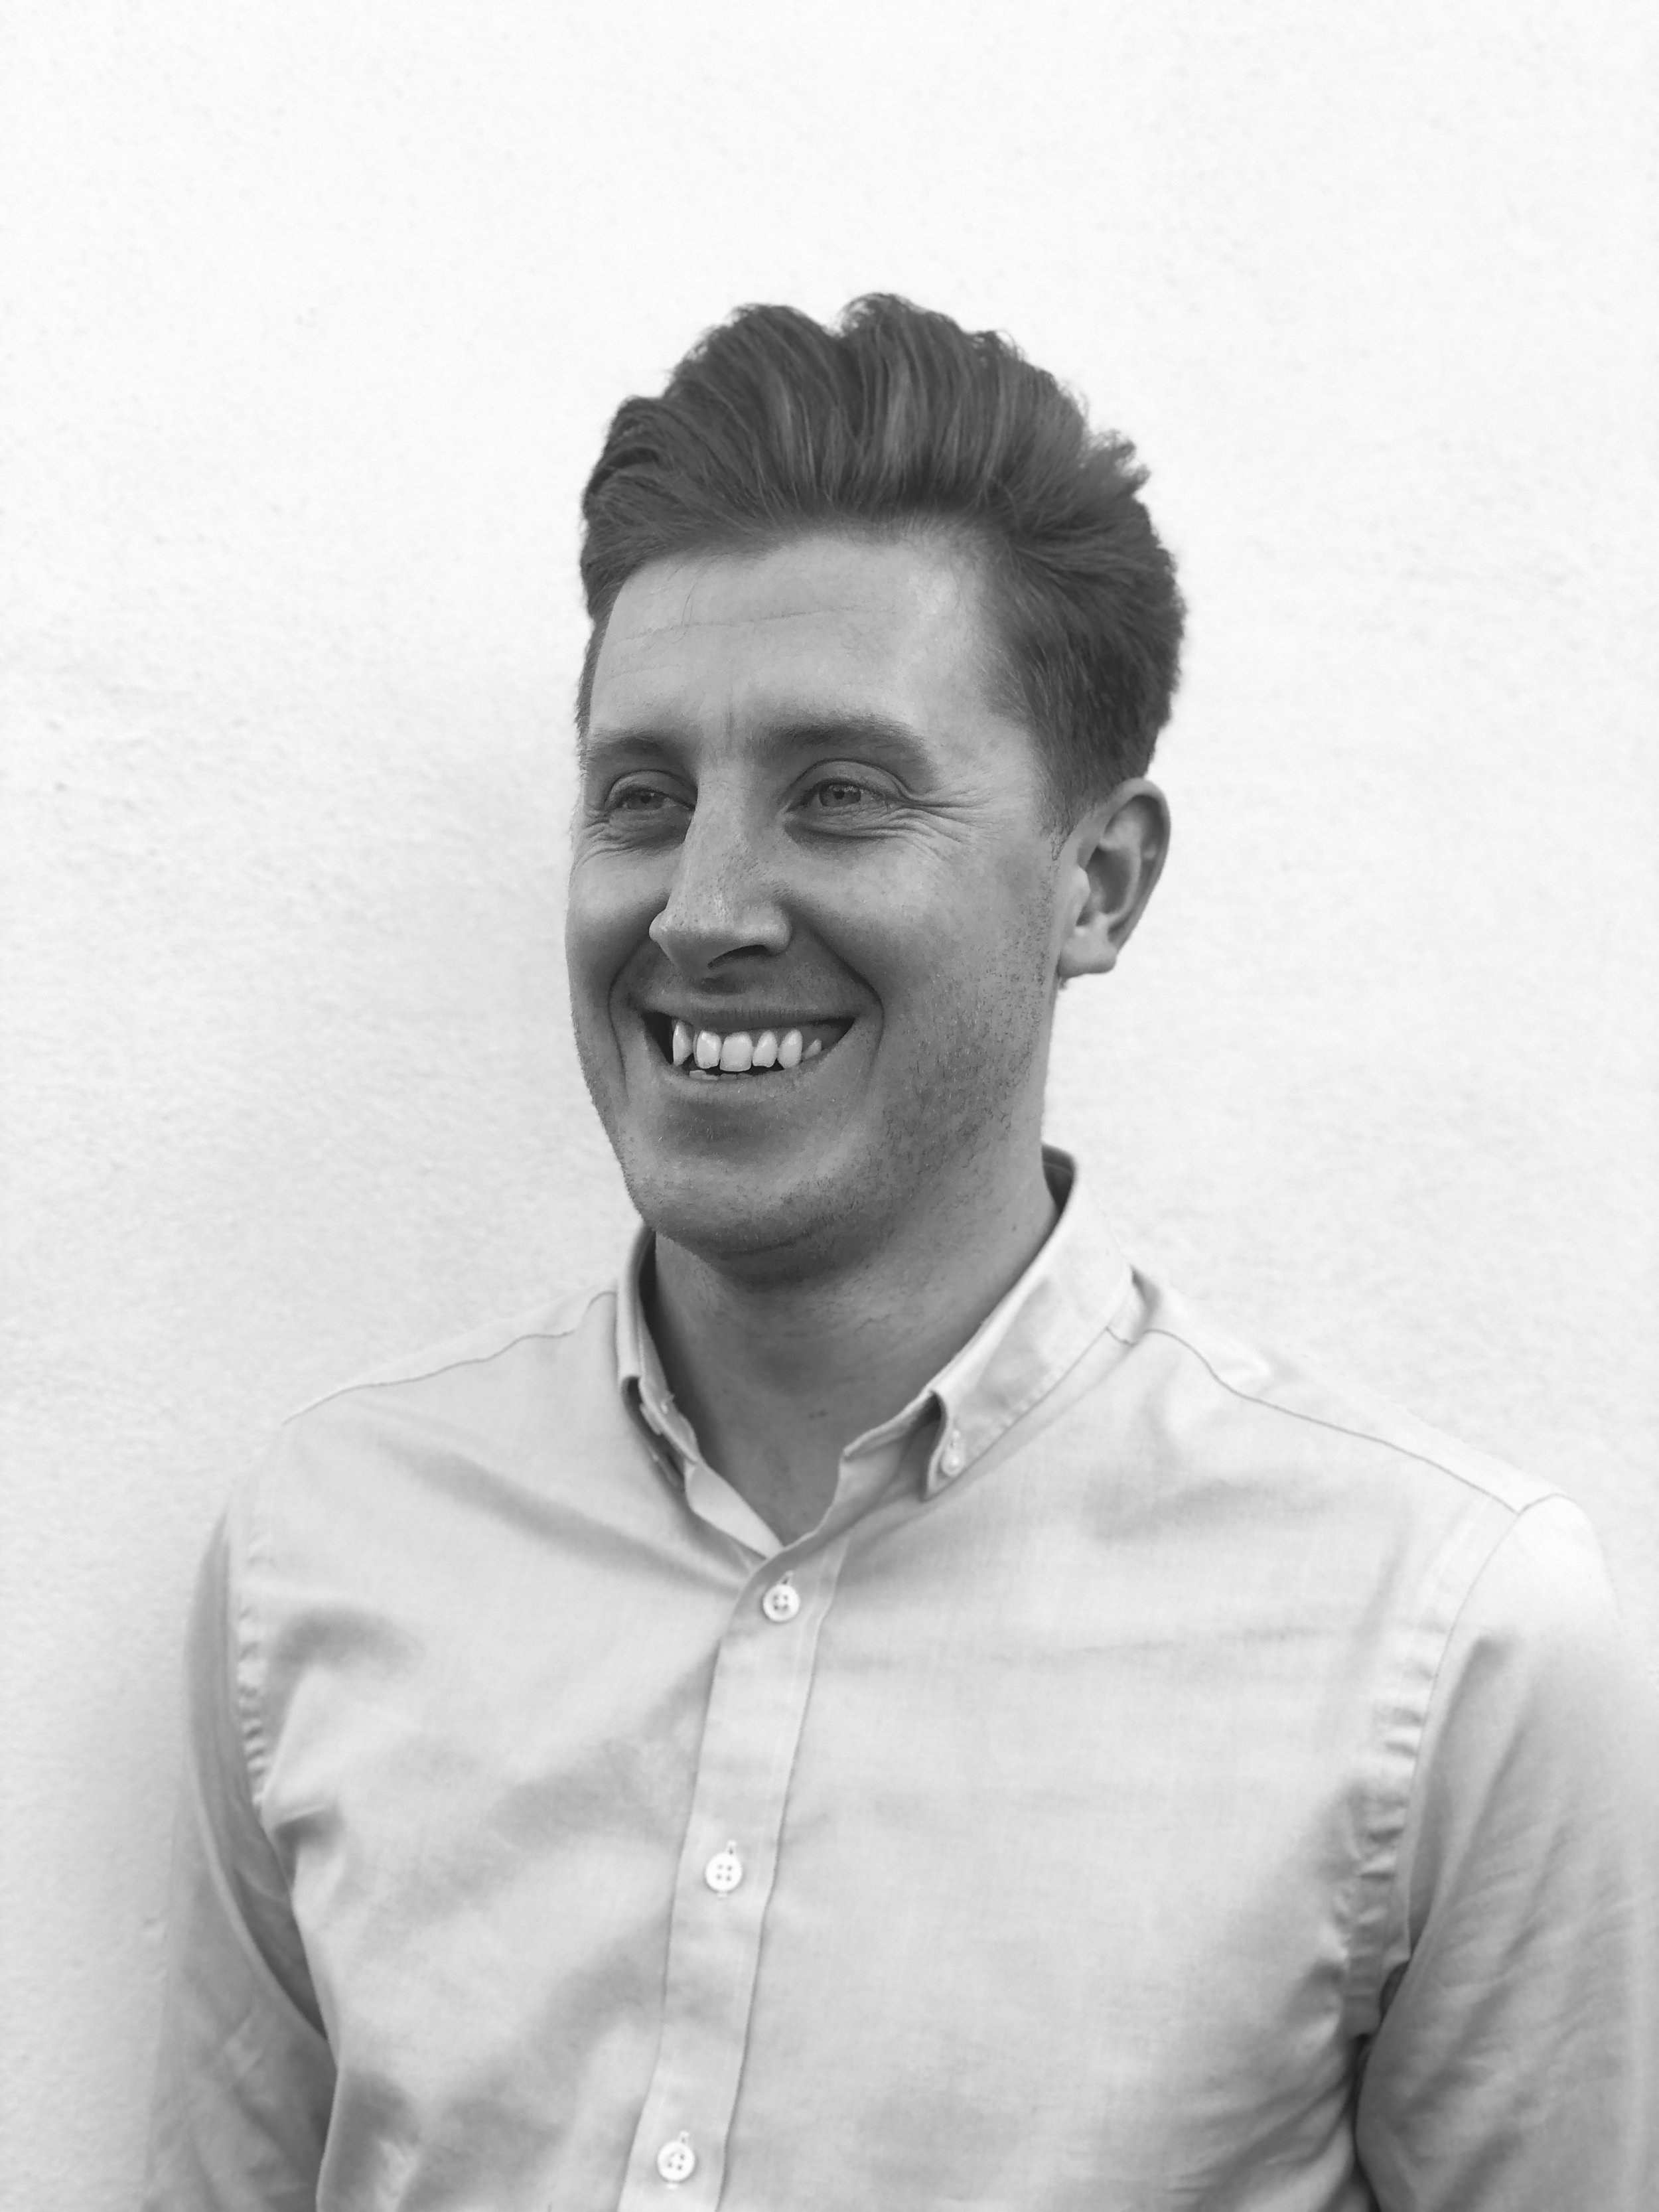 Stephen is an expert in assembling and leading high performing teams who believes that successful Project Management is about more than managing the process. For him, a successful project should be an enjoyable and collaborative journey for clients, professional teams and contractors - with a good dose of humour along the way!